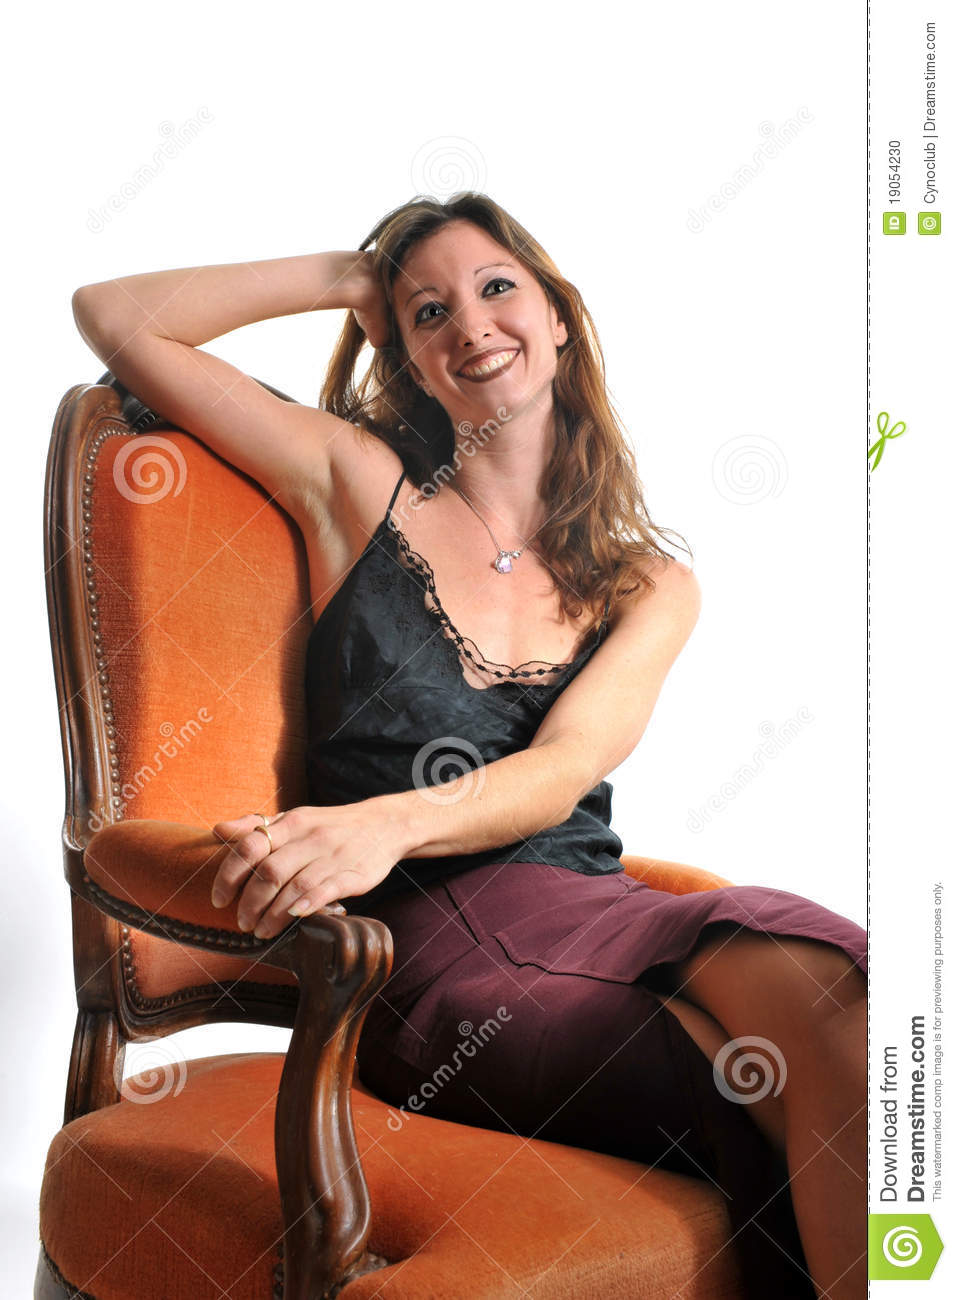 Woman On Armchair Stock Photo - Image: 19054230